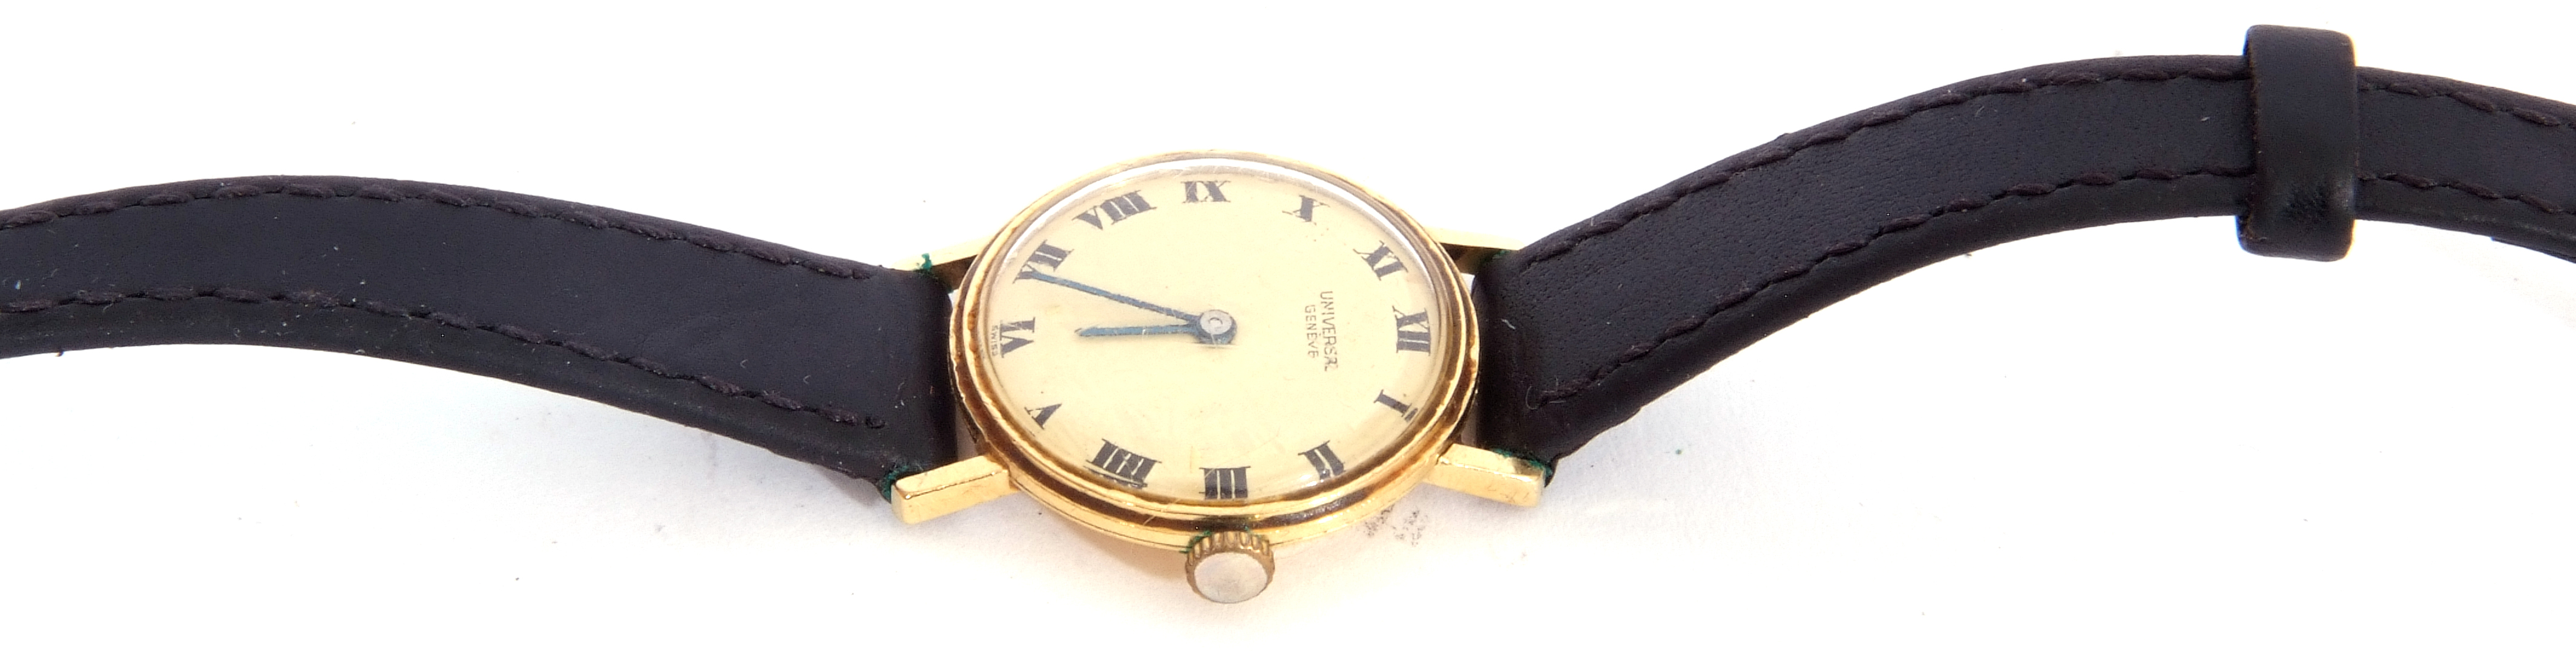 First quarter of 20th century ladies wrist watch, the round dial with black painted Roman - Image 2 of 6